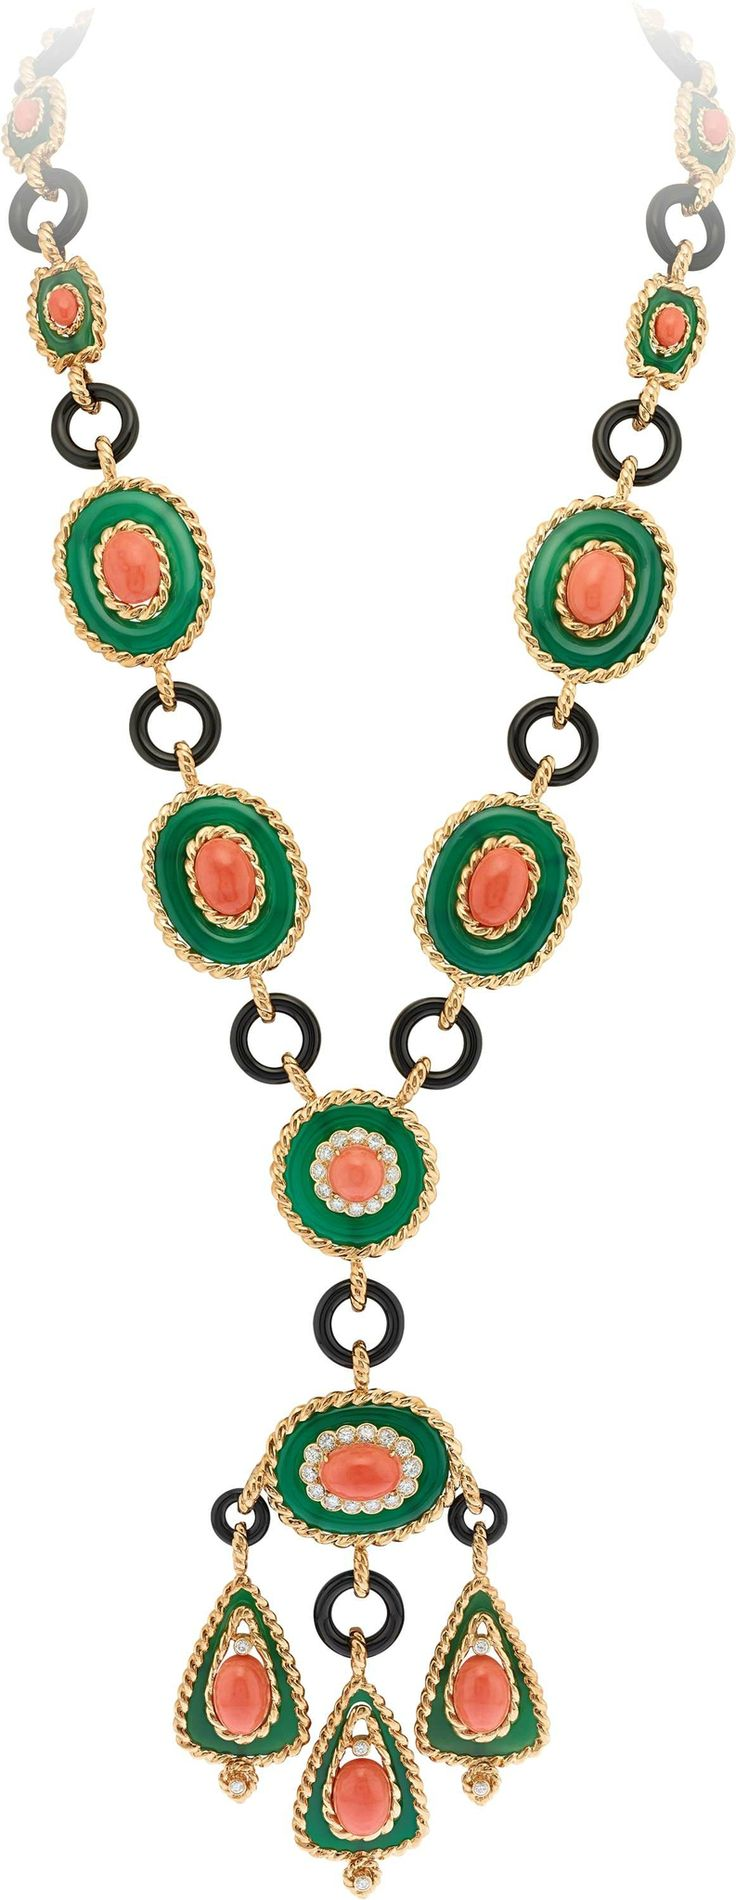 Van Cleef & Arpels. Necklace. Yellow gold, platinum, round diamonds, onyx, green chalcedony, coral. Heritage Collection, circa 1972.